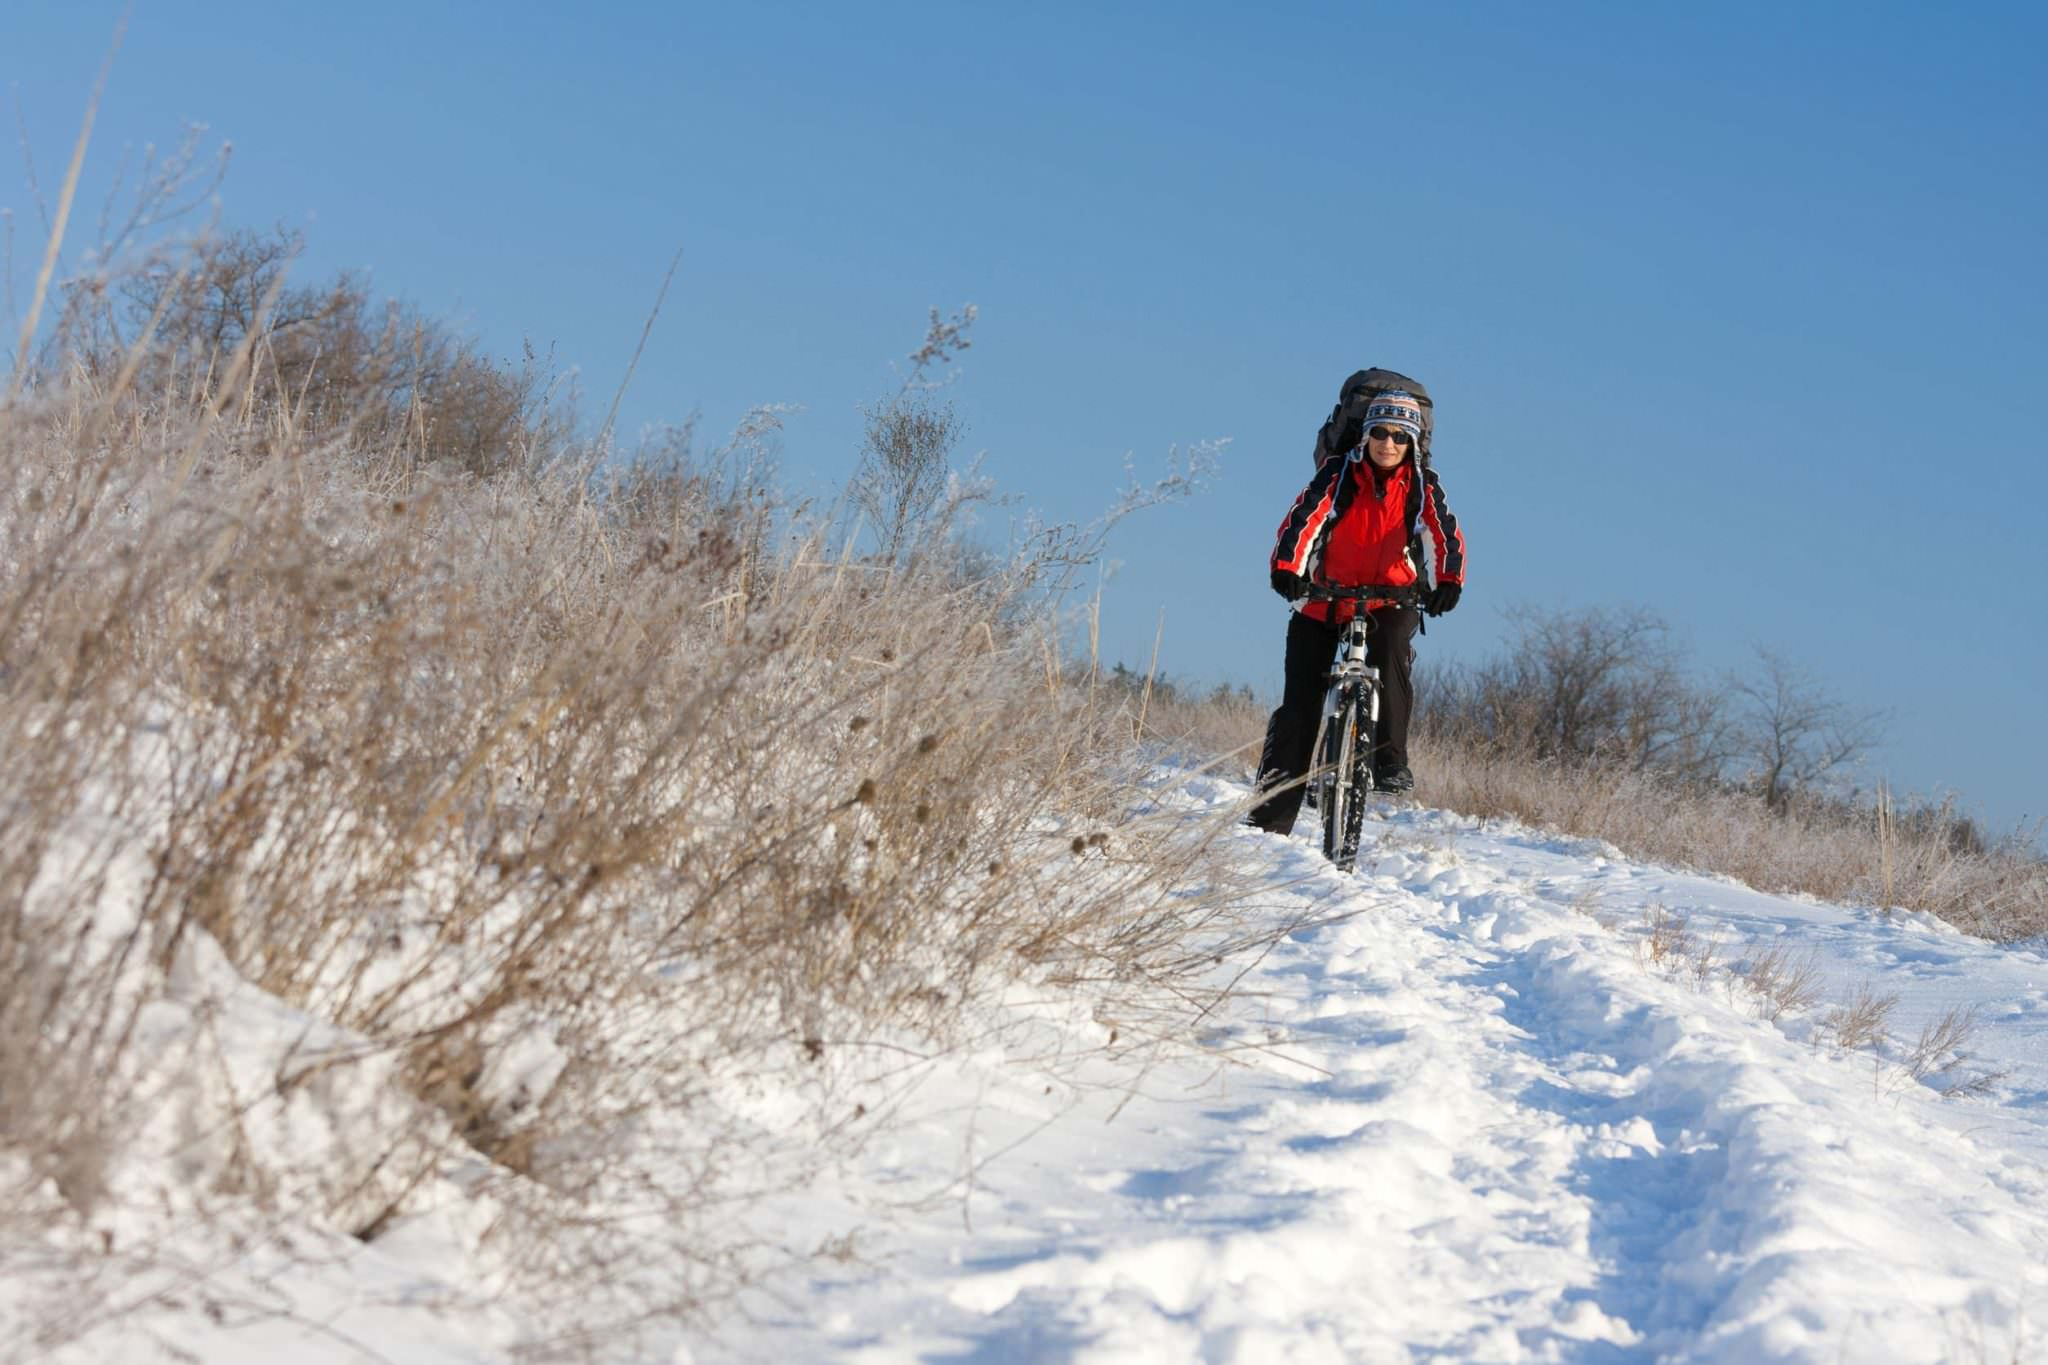 Cycling in winter clothing